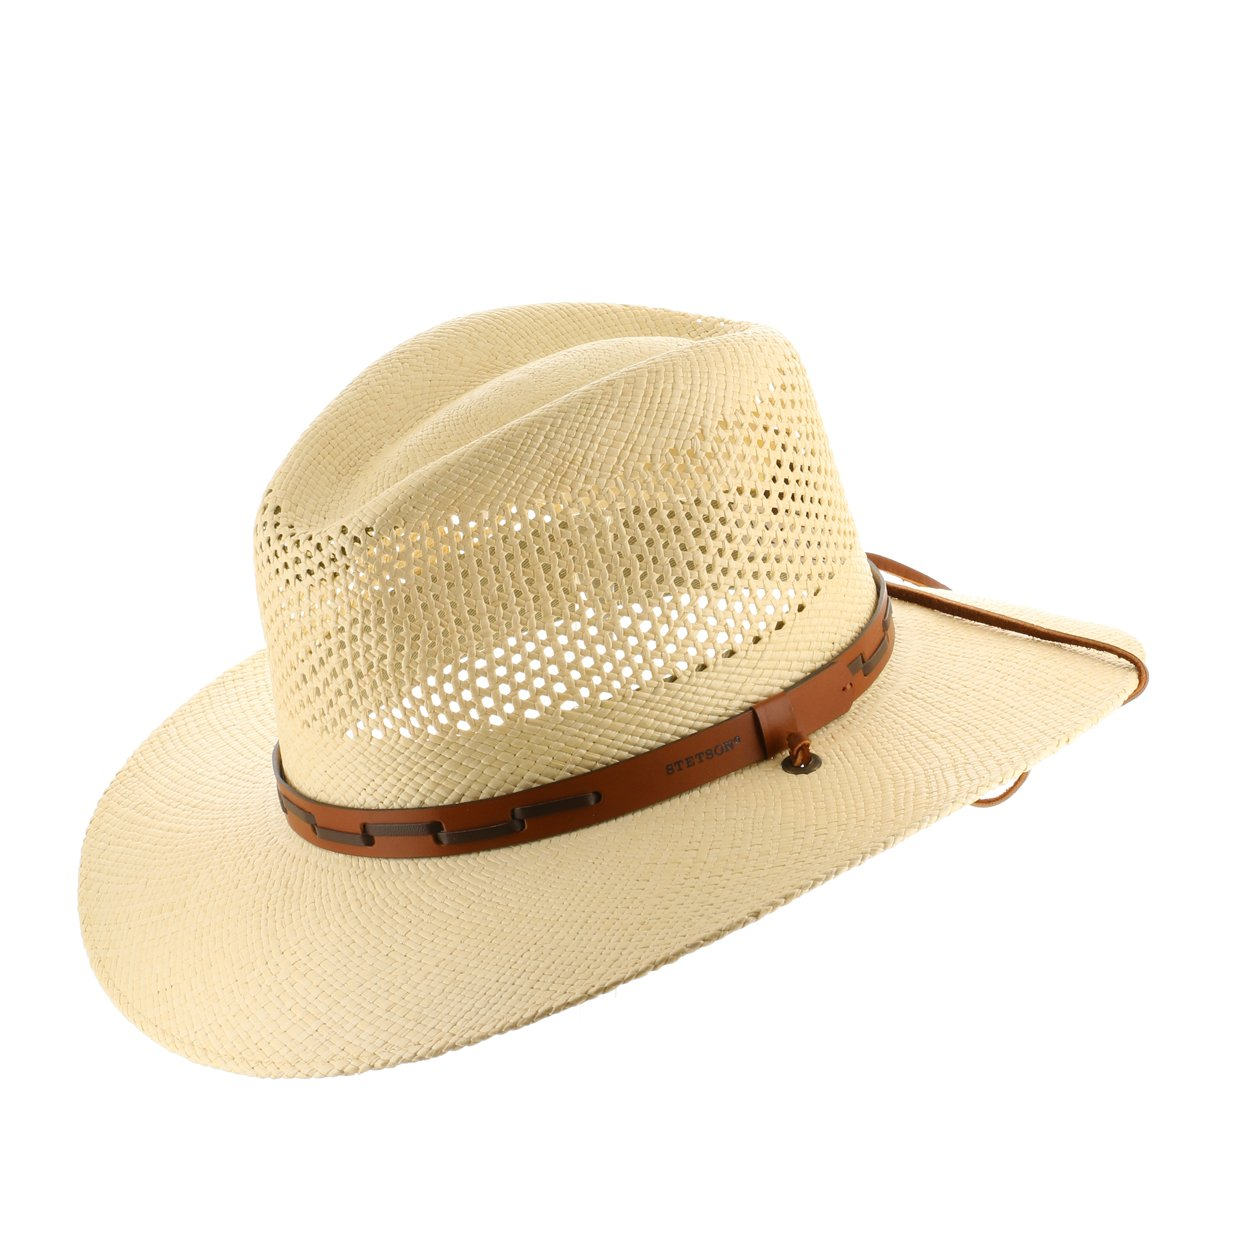 Ultrafino Stetson Outback Vented Mens Straw Panama Hat 123002